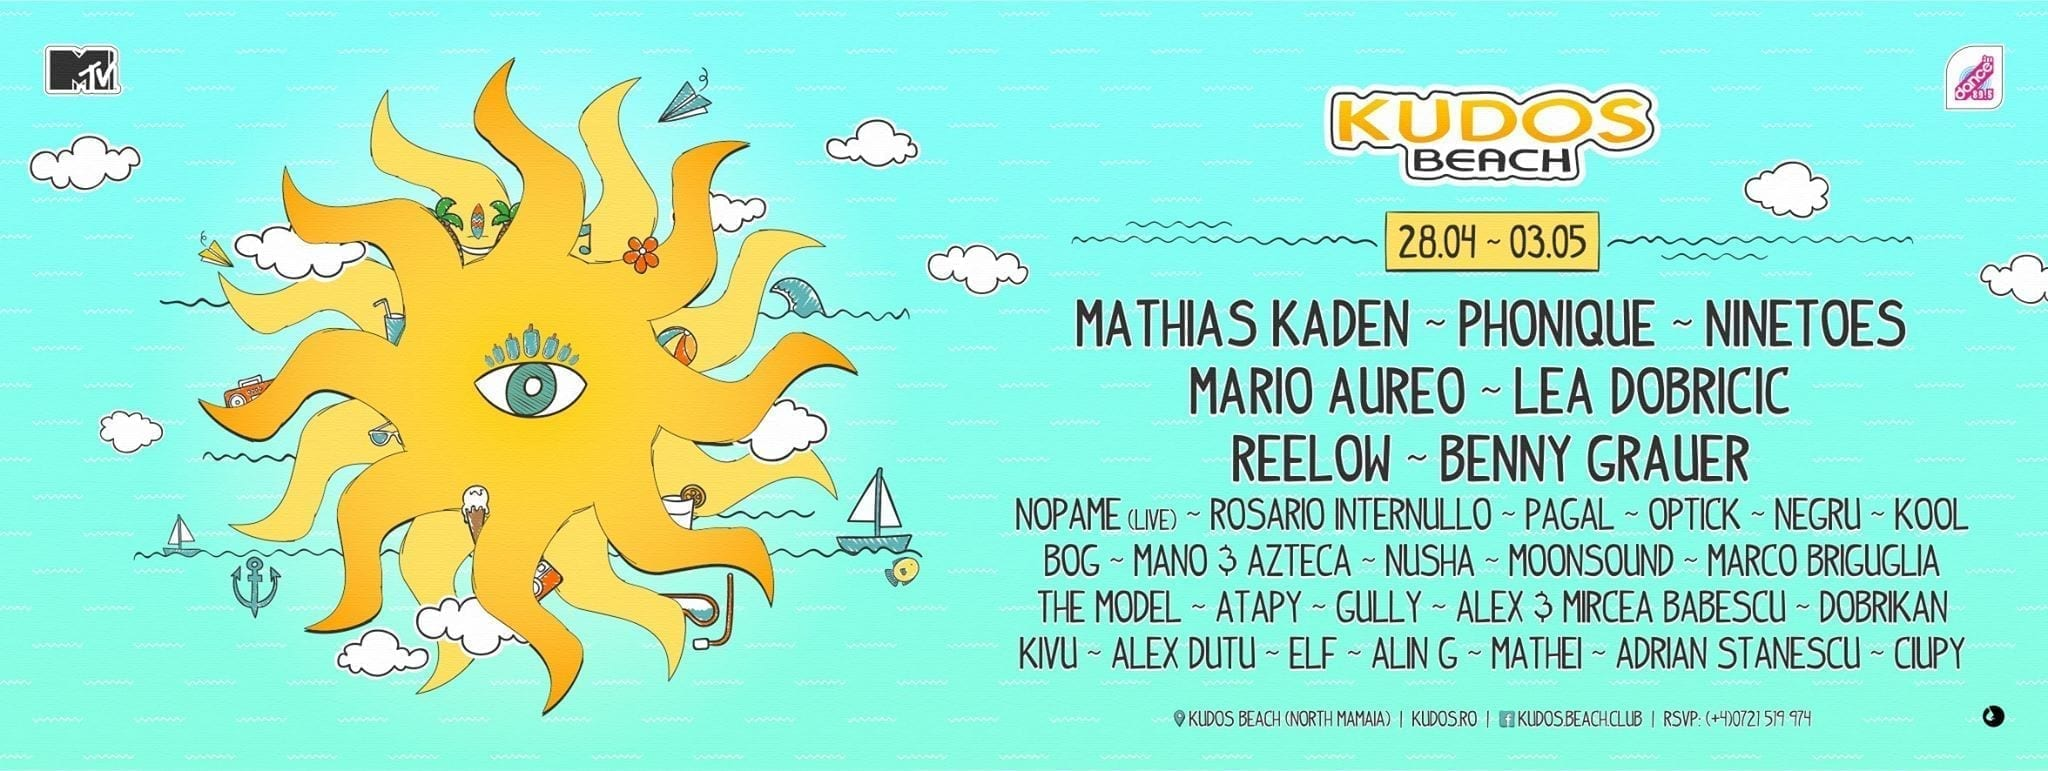 1st of May 2016 @ Kudos Beach